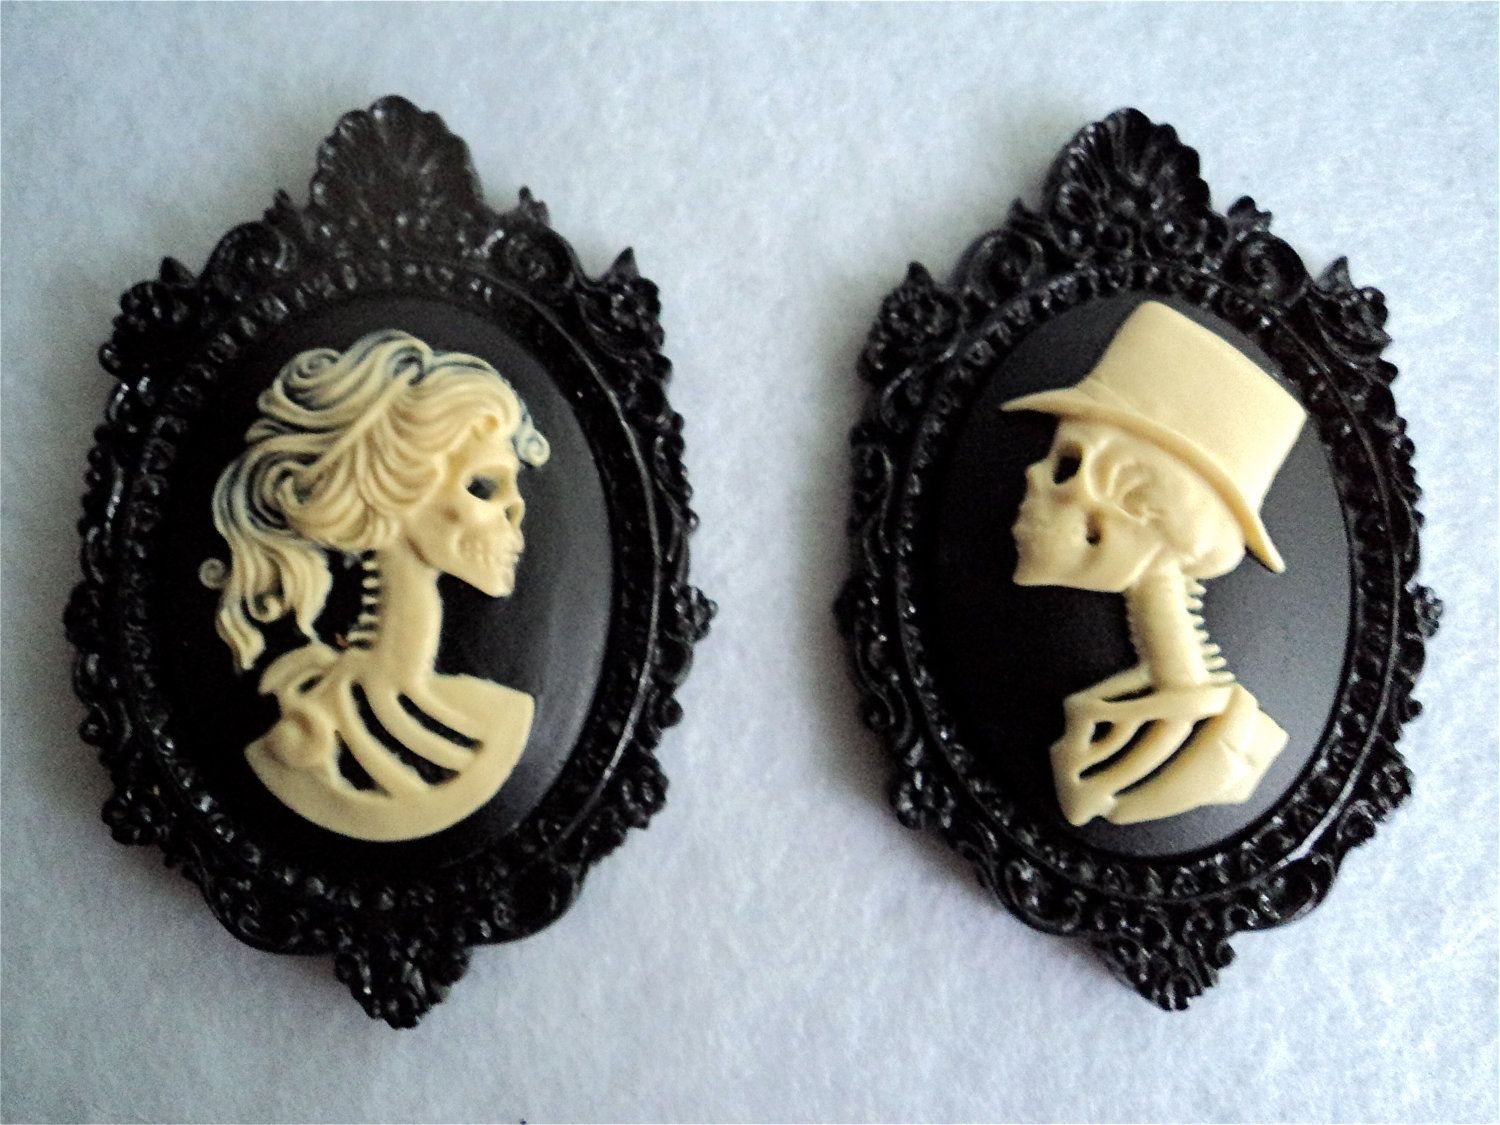 The Late Lord Lucius and His Lady Lenore Cameo Brooch Set ...